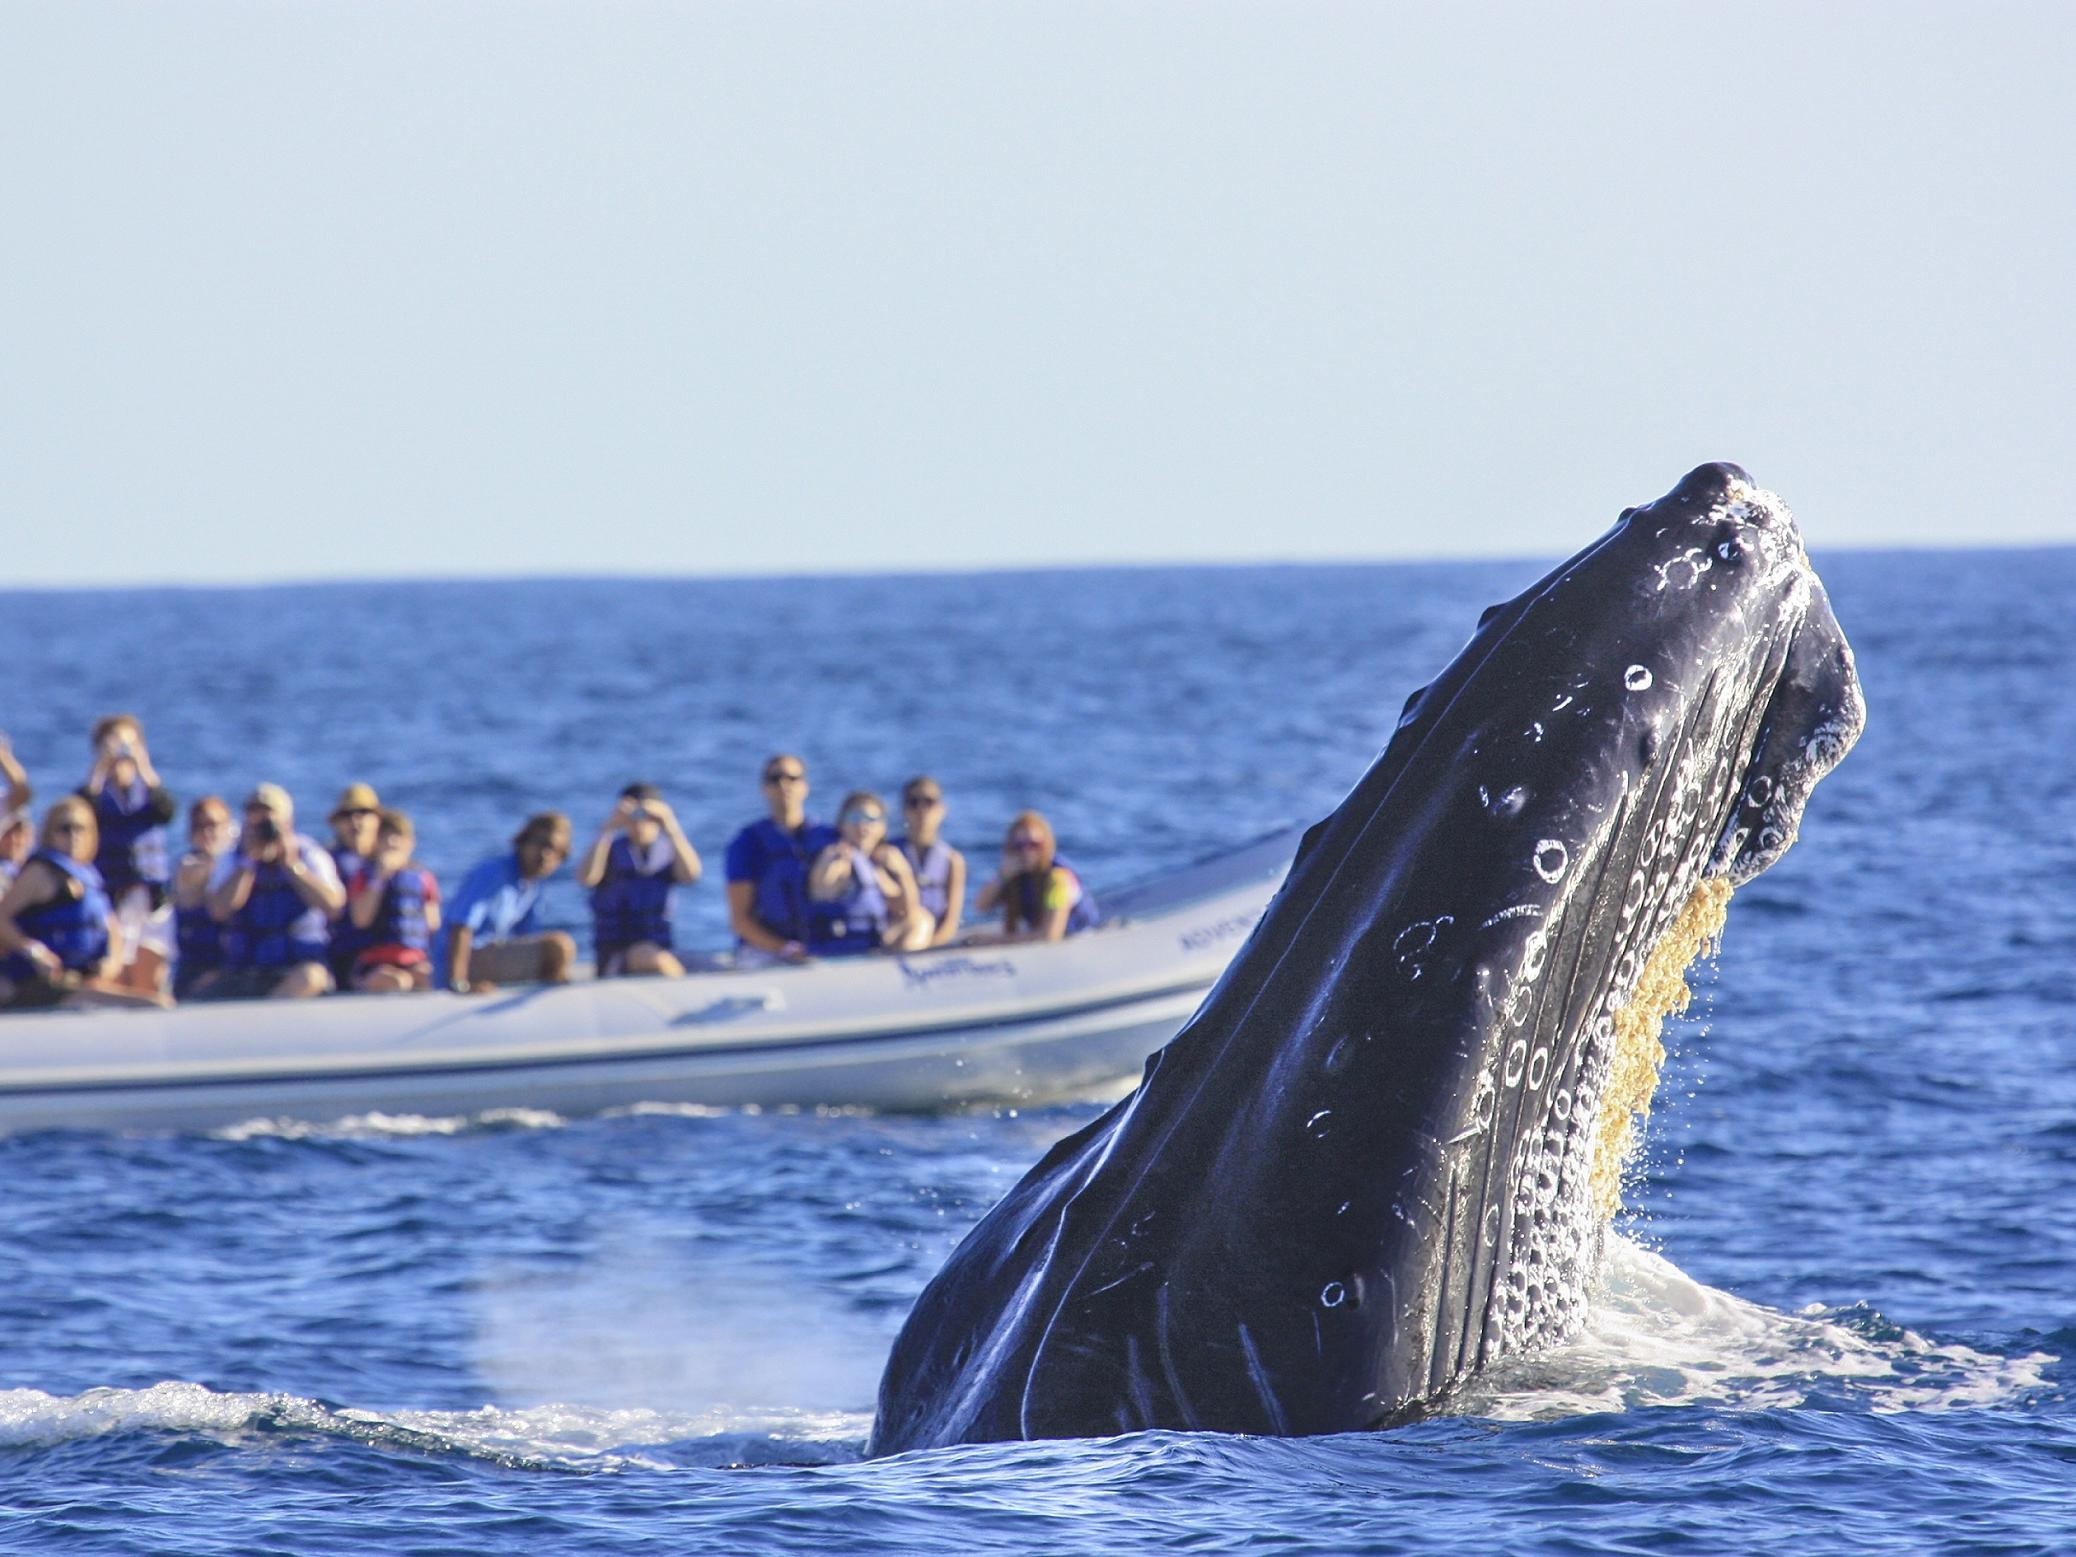 a group of people watching a whale